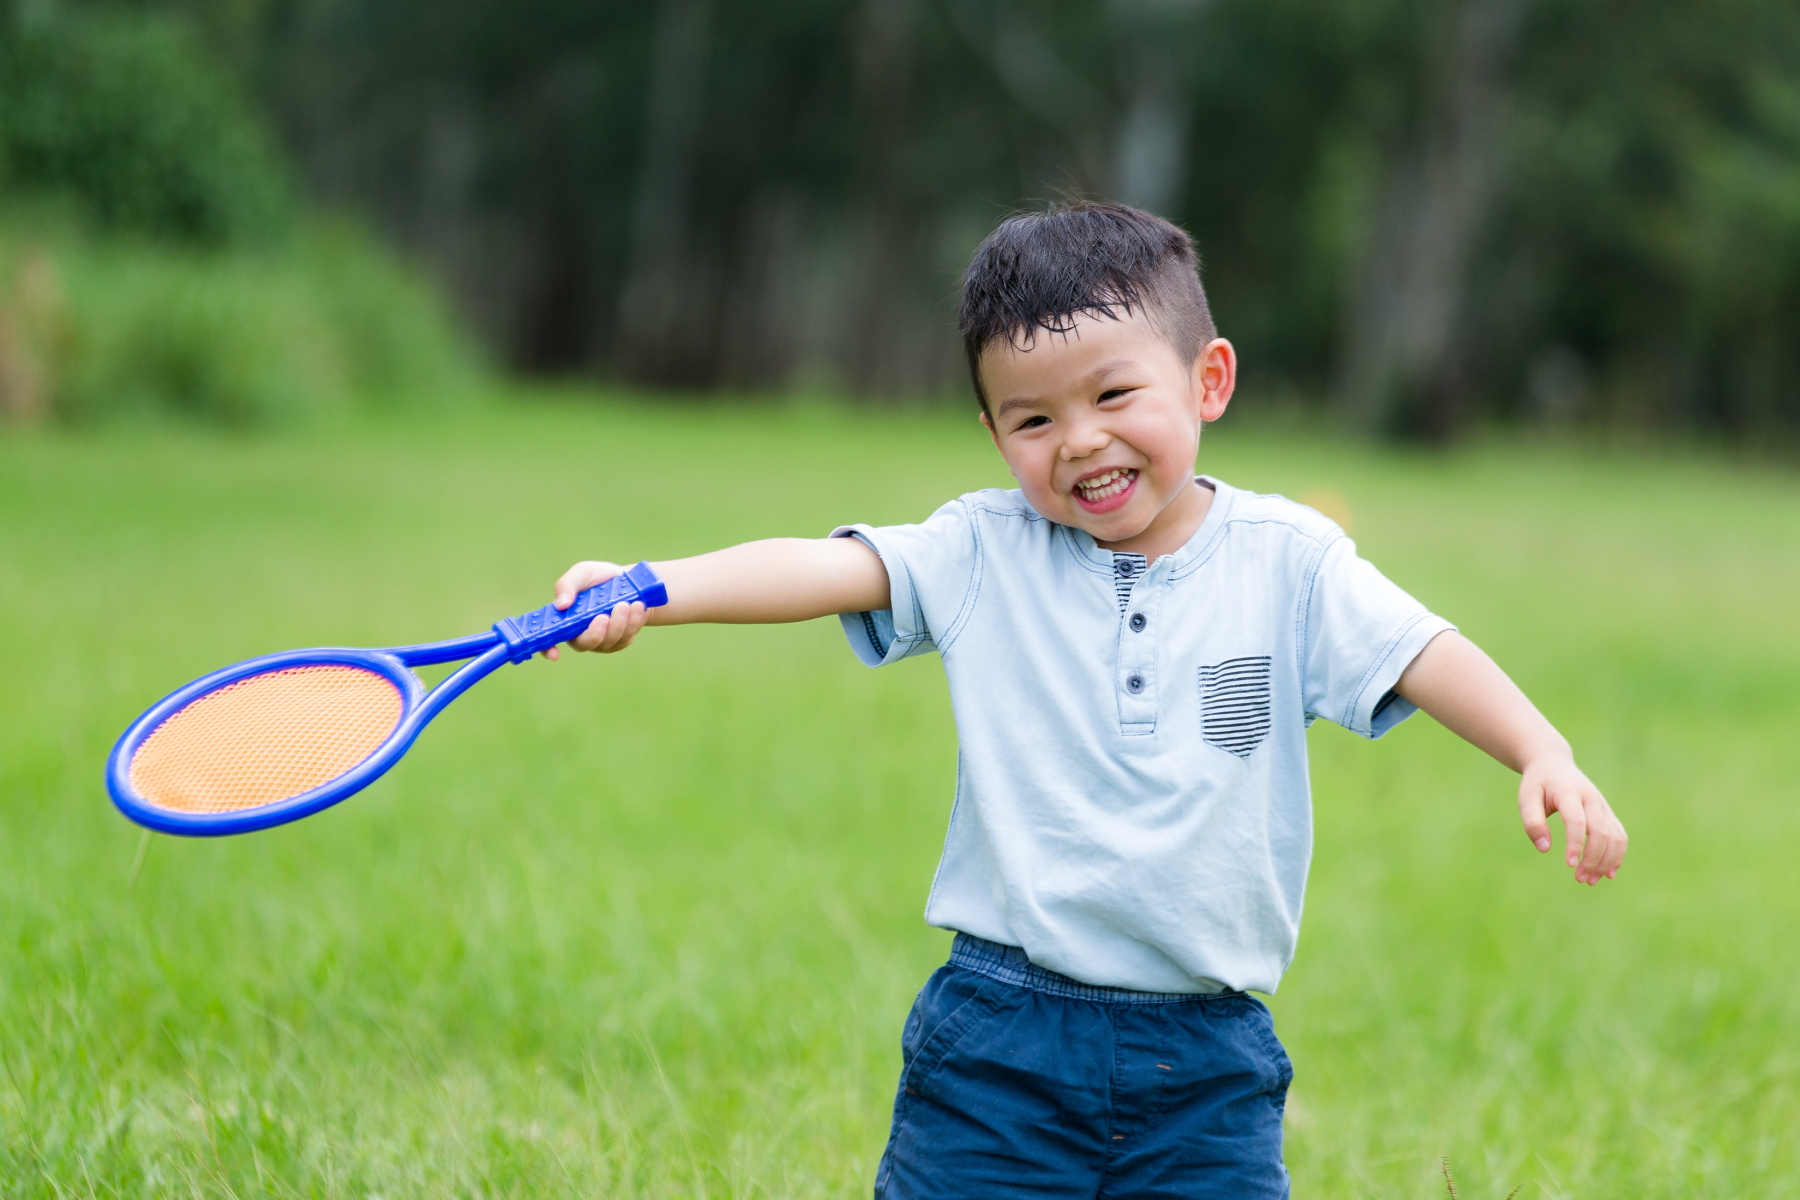 Thrilled little boy playing tennis at park